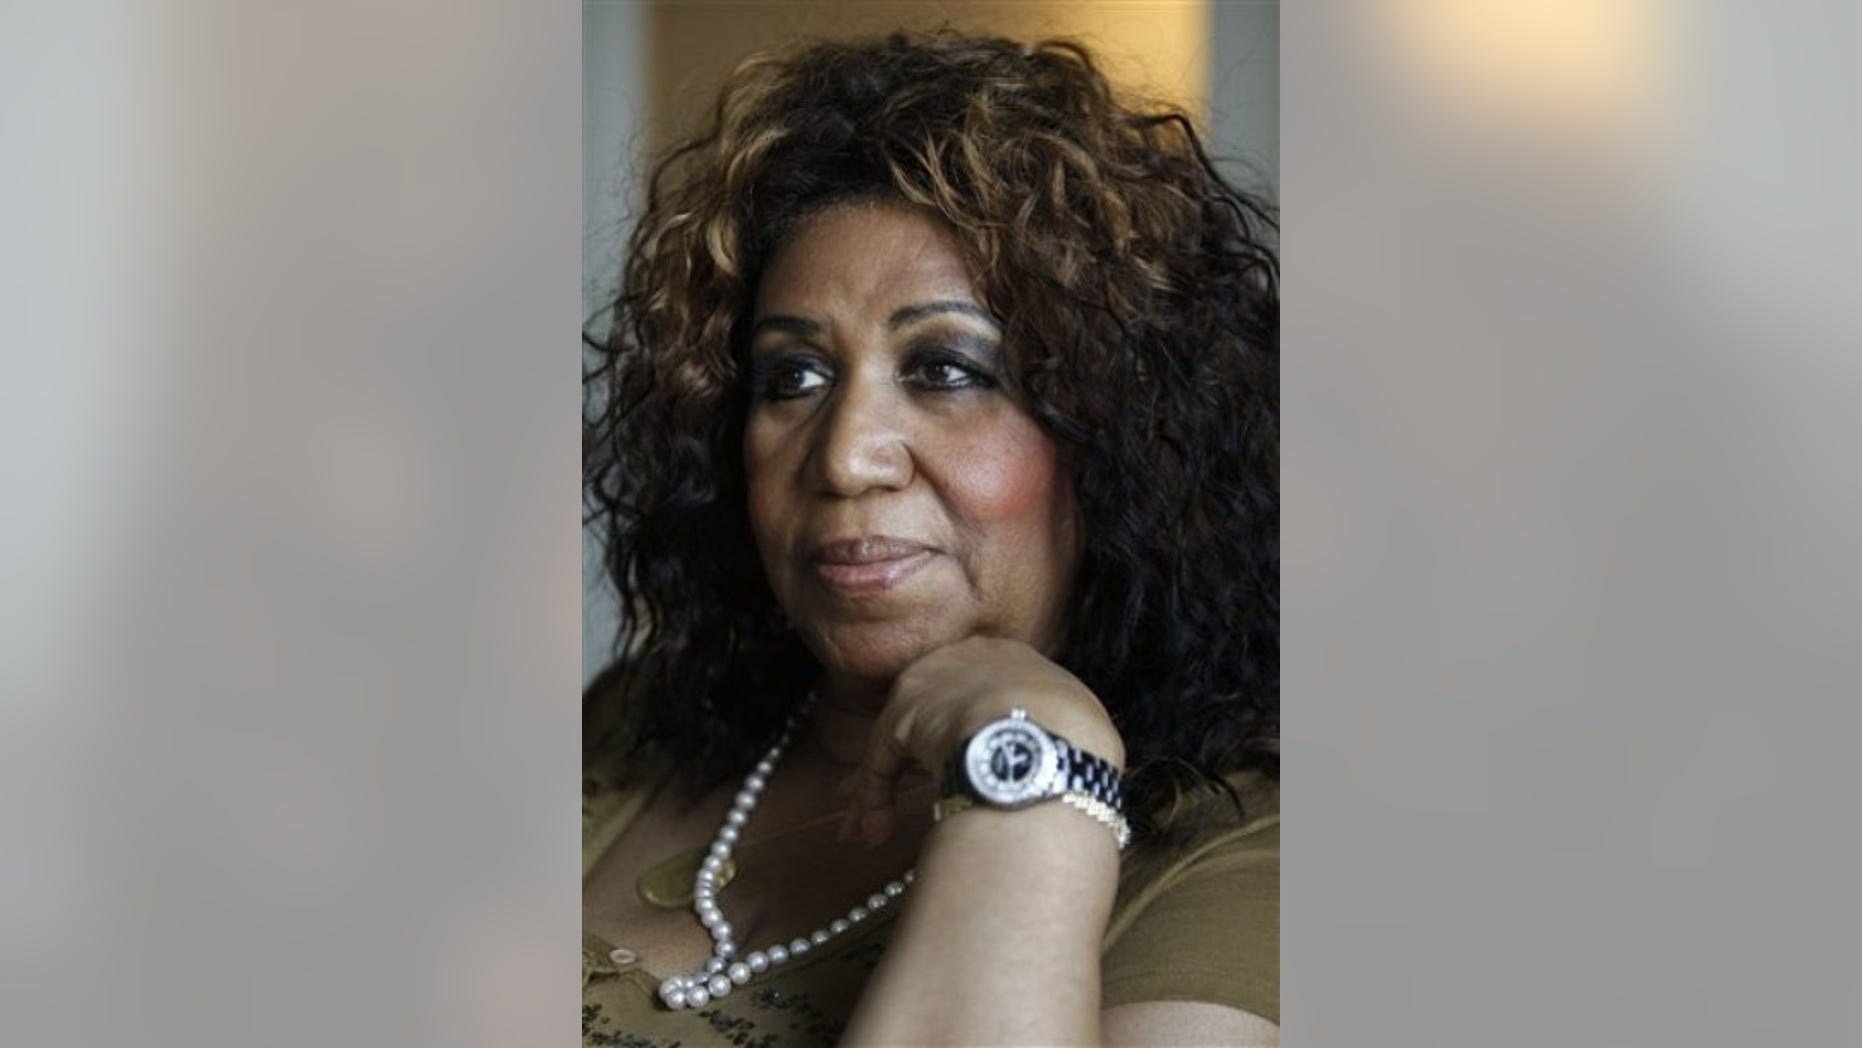 Performer Aretha Franklin is seen during an interview with the Associated Press in Philadelphia, Monday, July 26, 2010.  Former Secretary of State Condoleezza Rice and Franklin are scheduled to perform together Tuesday at the Mann Center for the Performing Arts in Philadelphia. (AP Photo/Matt Rourke)